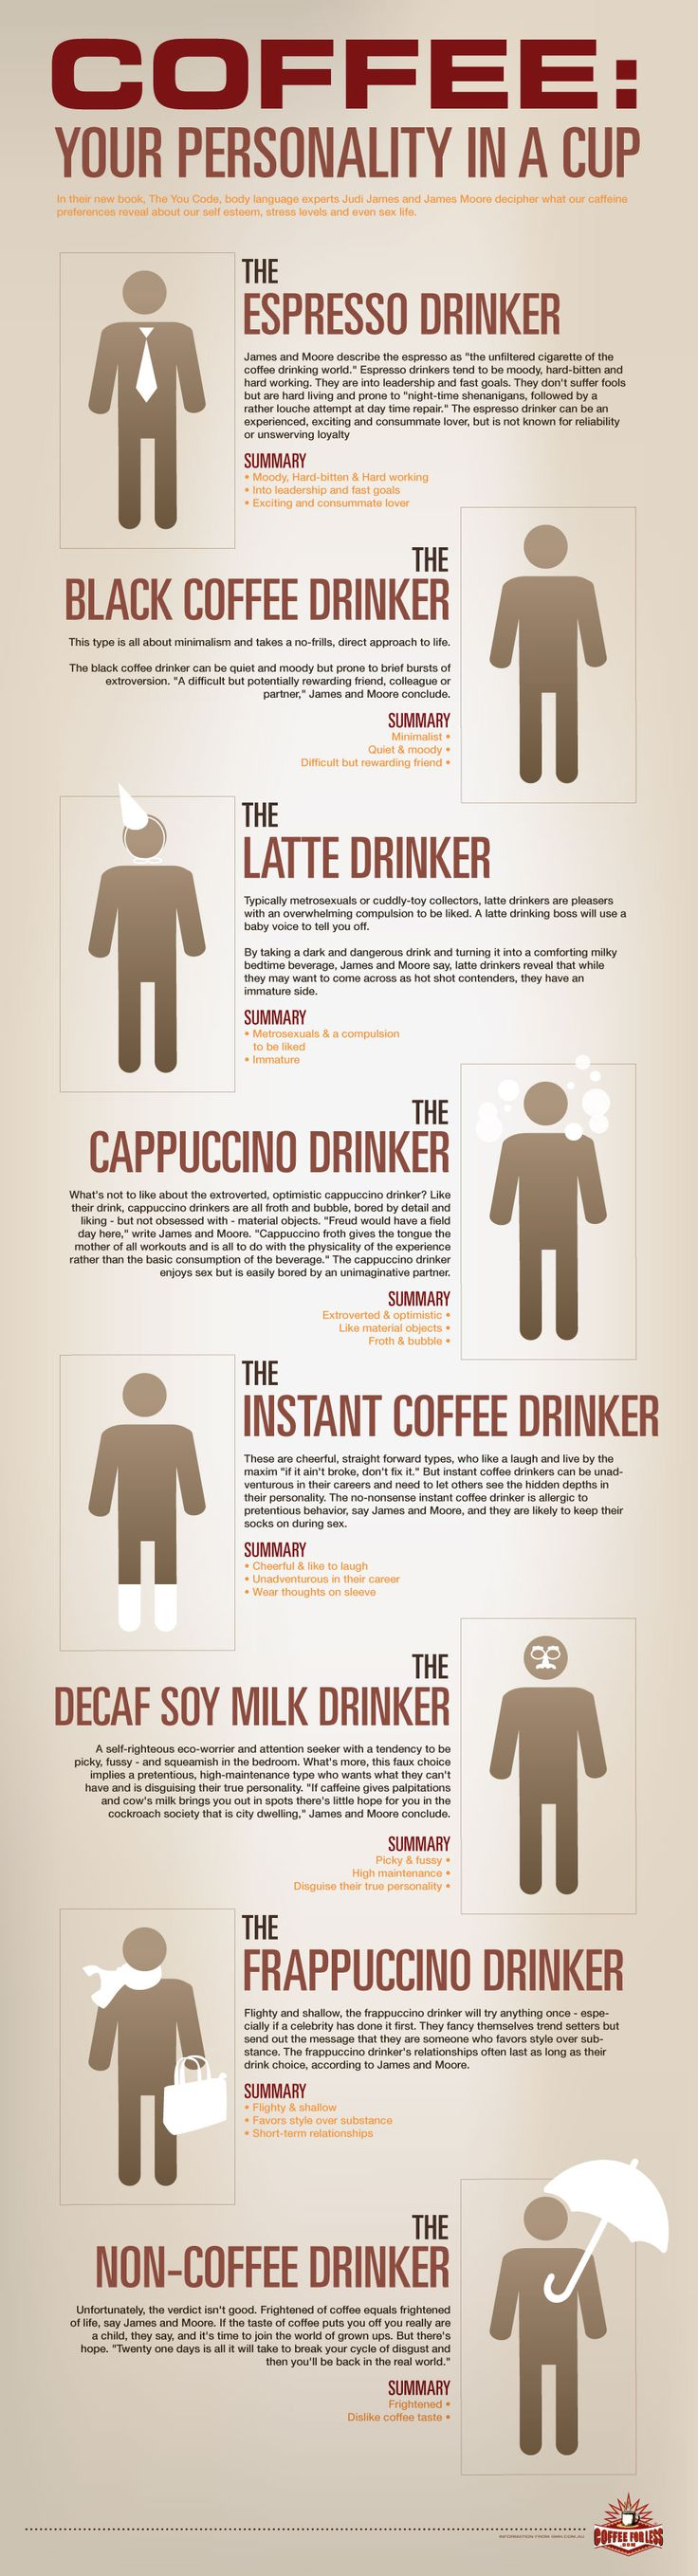 HAHAHA funny! I'm the black coffee drinker...quiet and moody, and a difficult but rewarding friend. Hmmm :/